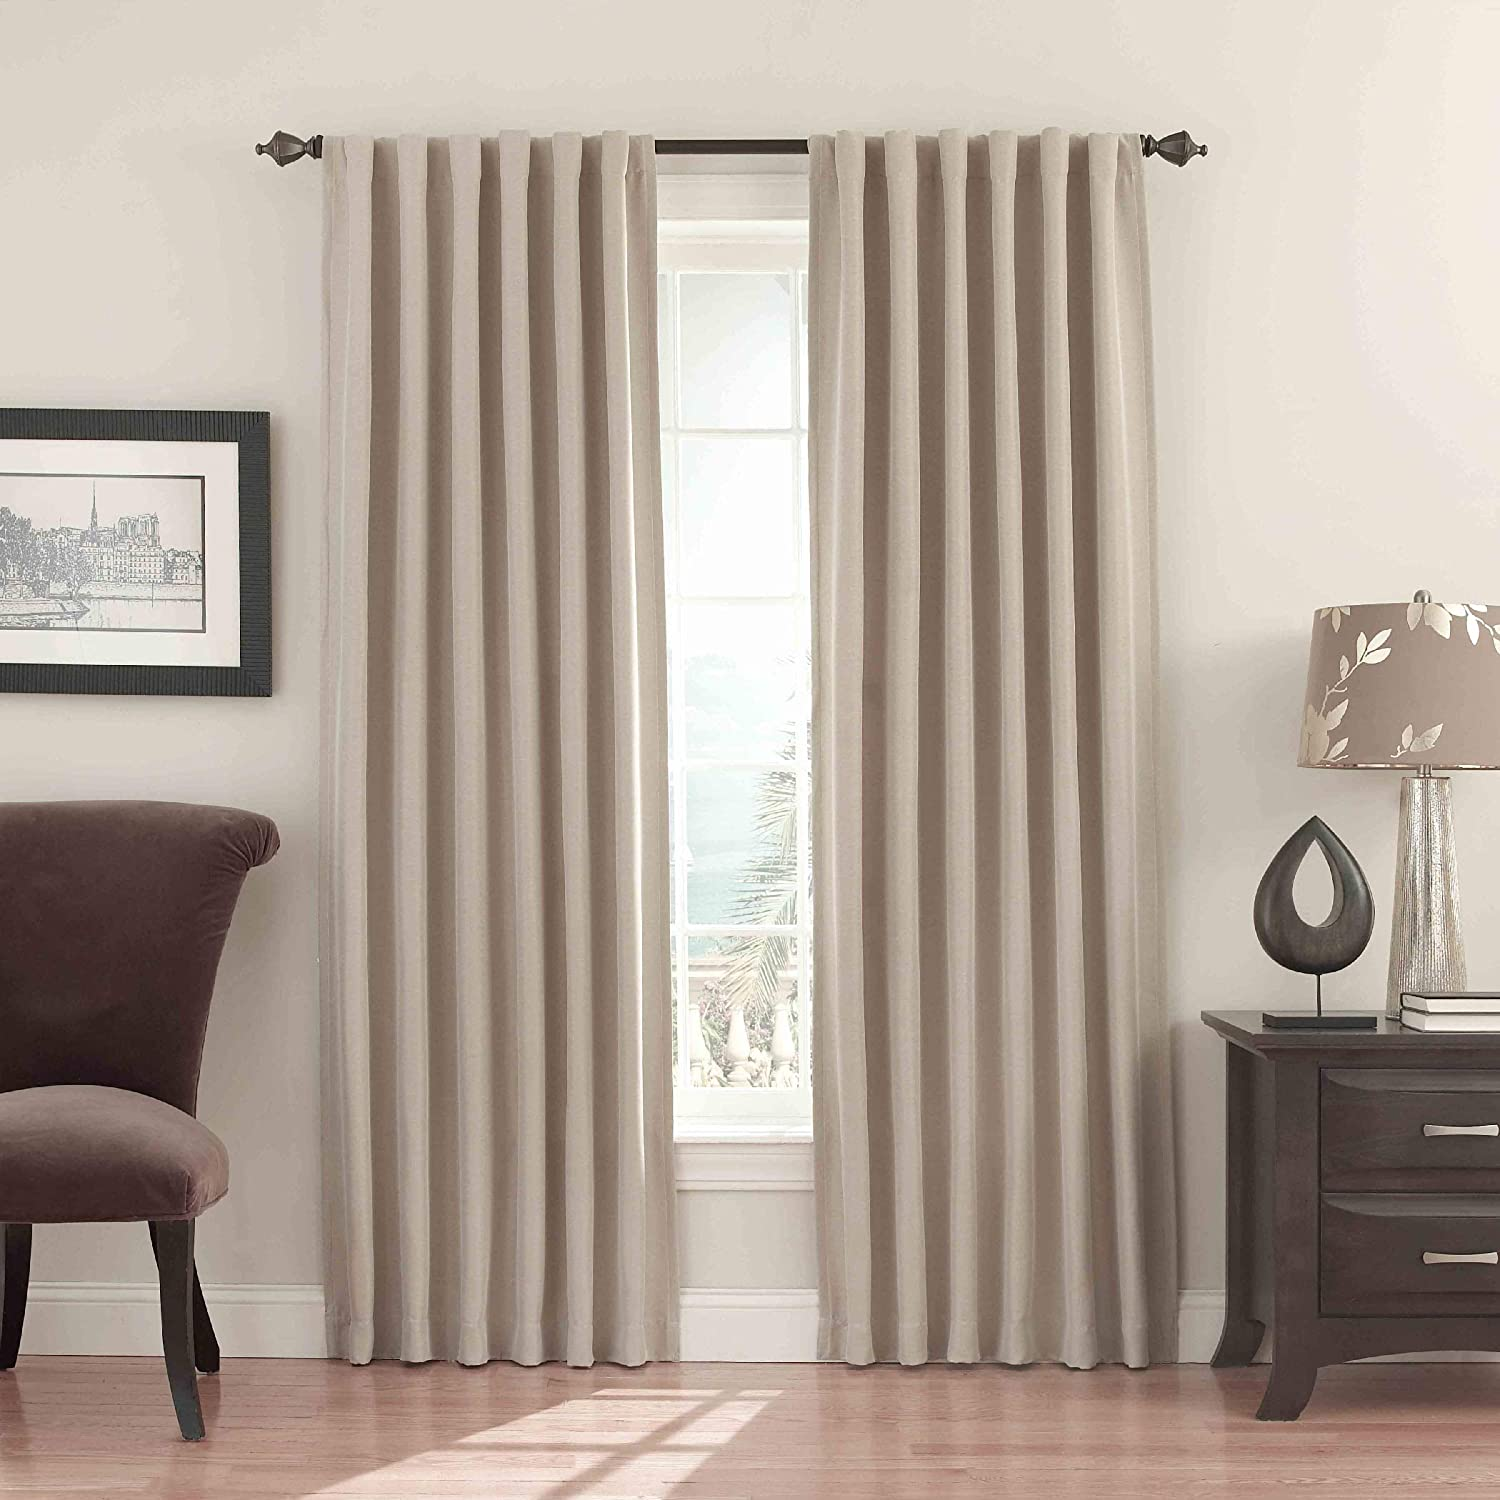 Black Solid Thermapanel 54 x 63 Thermal Insulated Single Panel Rod Pocket Light Blocking Curtains for Living Room ECLIPSE Room Darkening Curtains for Bedroom